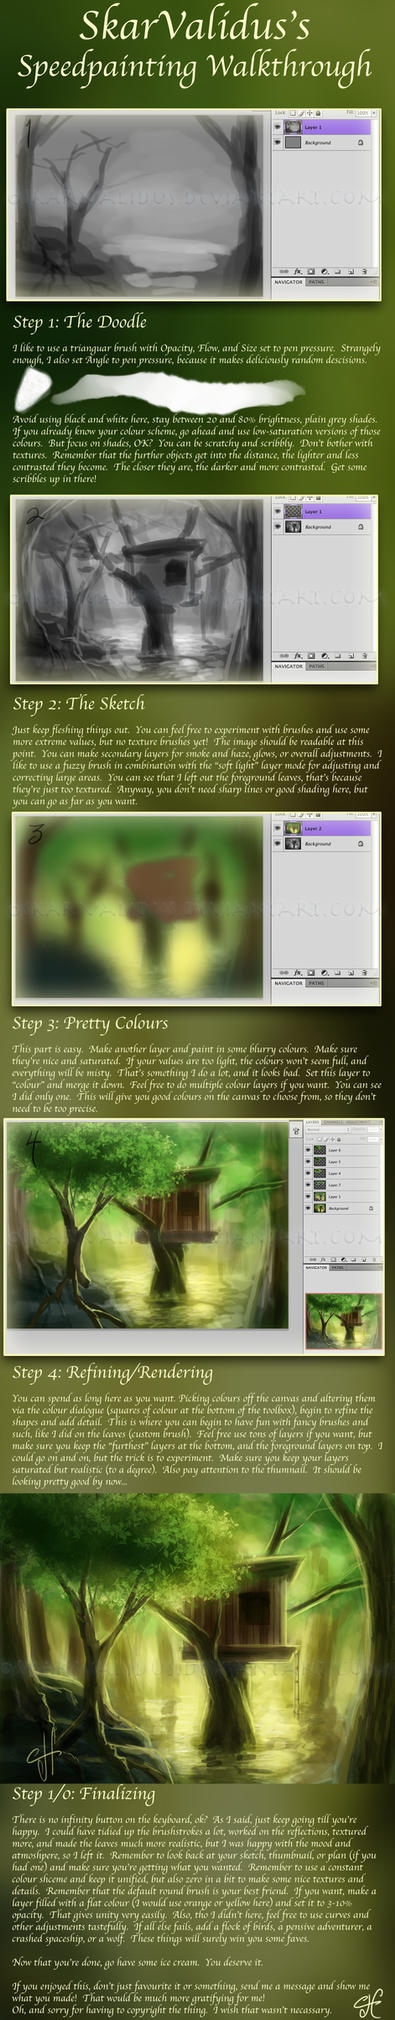 Speedpaint Tutorial - scenery by SkarValidus